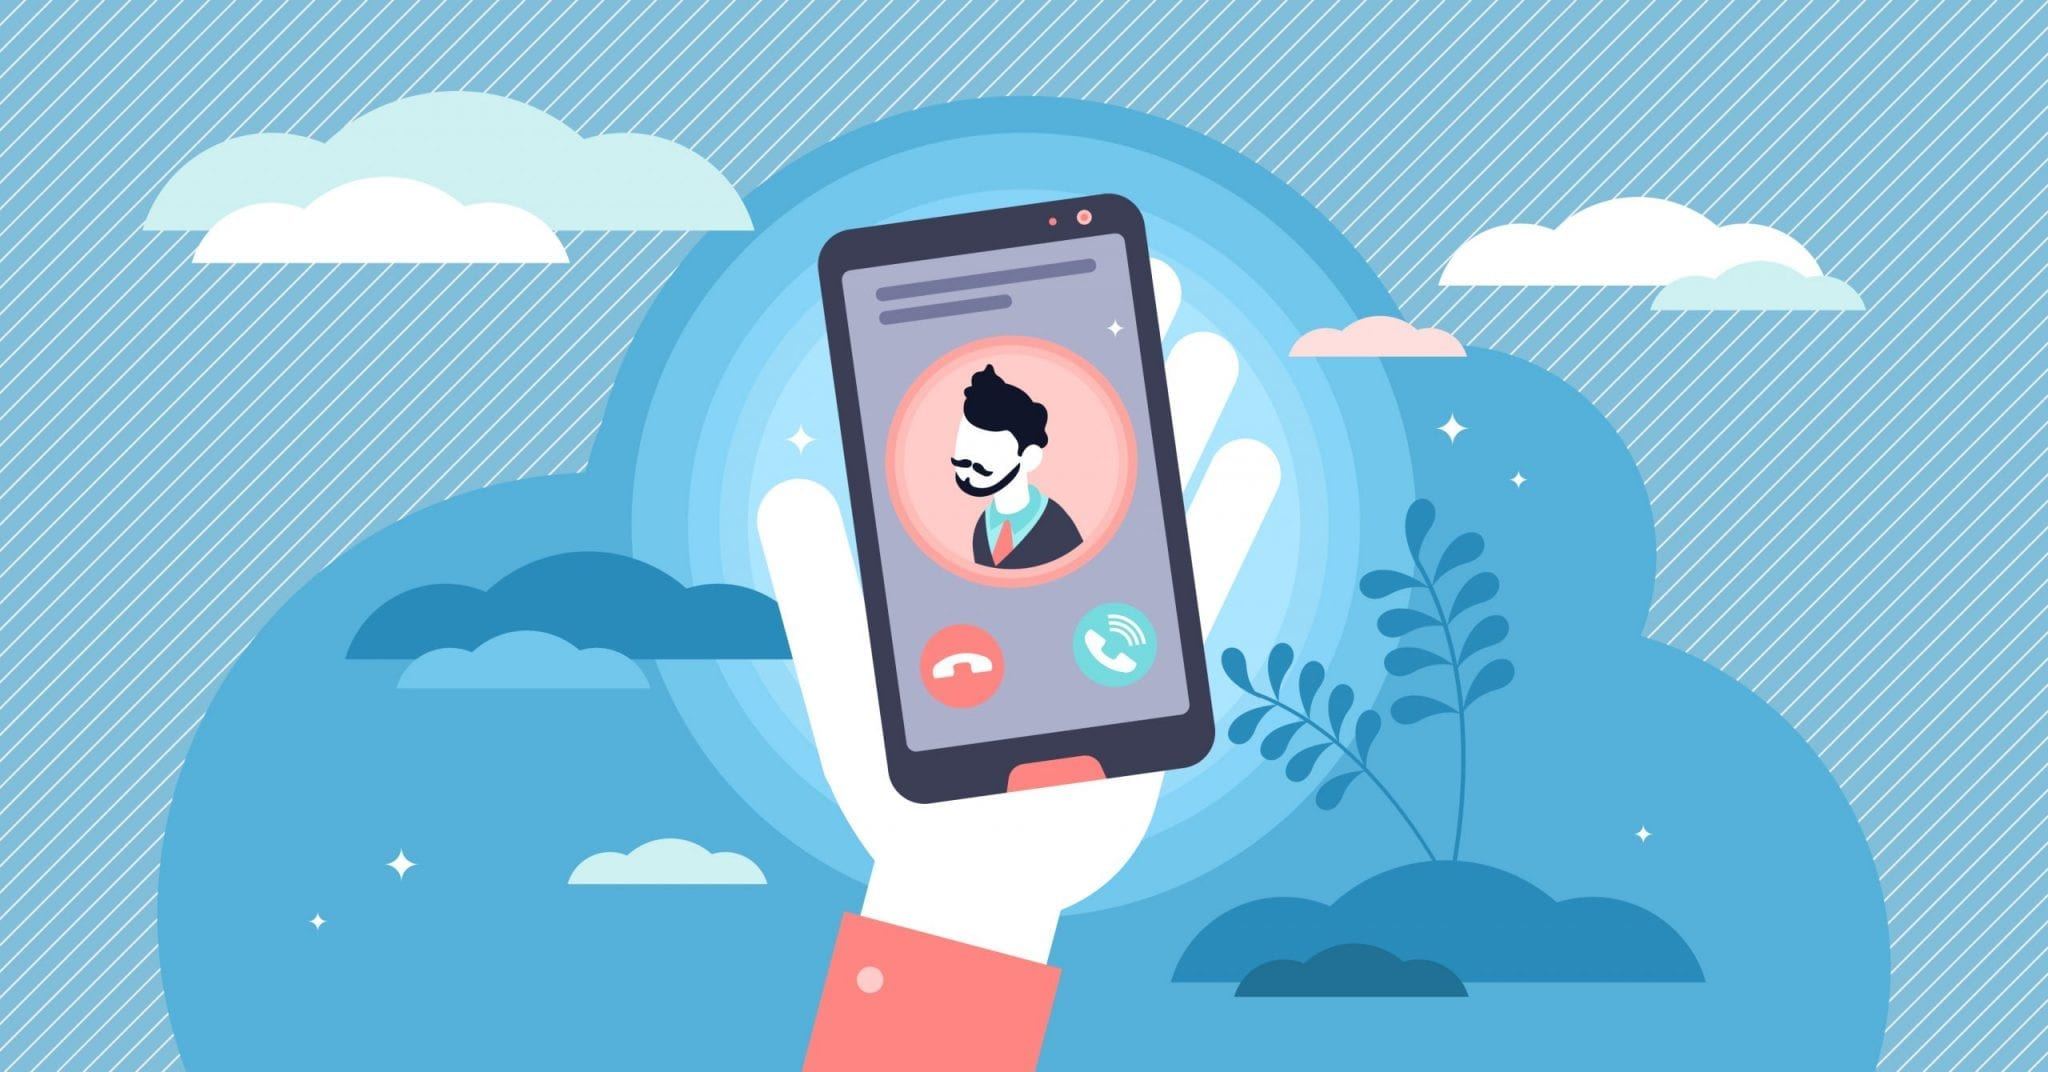 Incoming Call Concept Flat Tiny Person Vector Illustration. Hand Holding Phone to Pick Up Conversation. Mobile Screen With Male Contact Profile Avatar. Colleague or Boss Work or Private Communication.